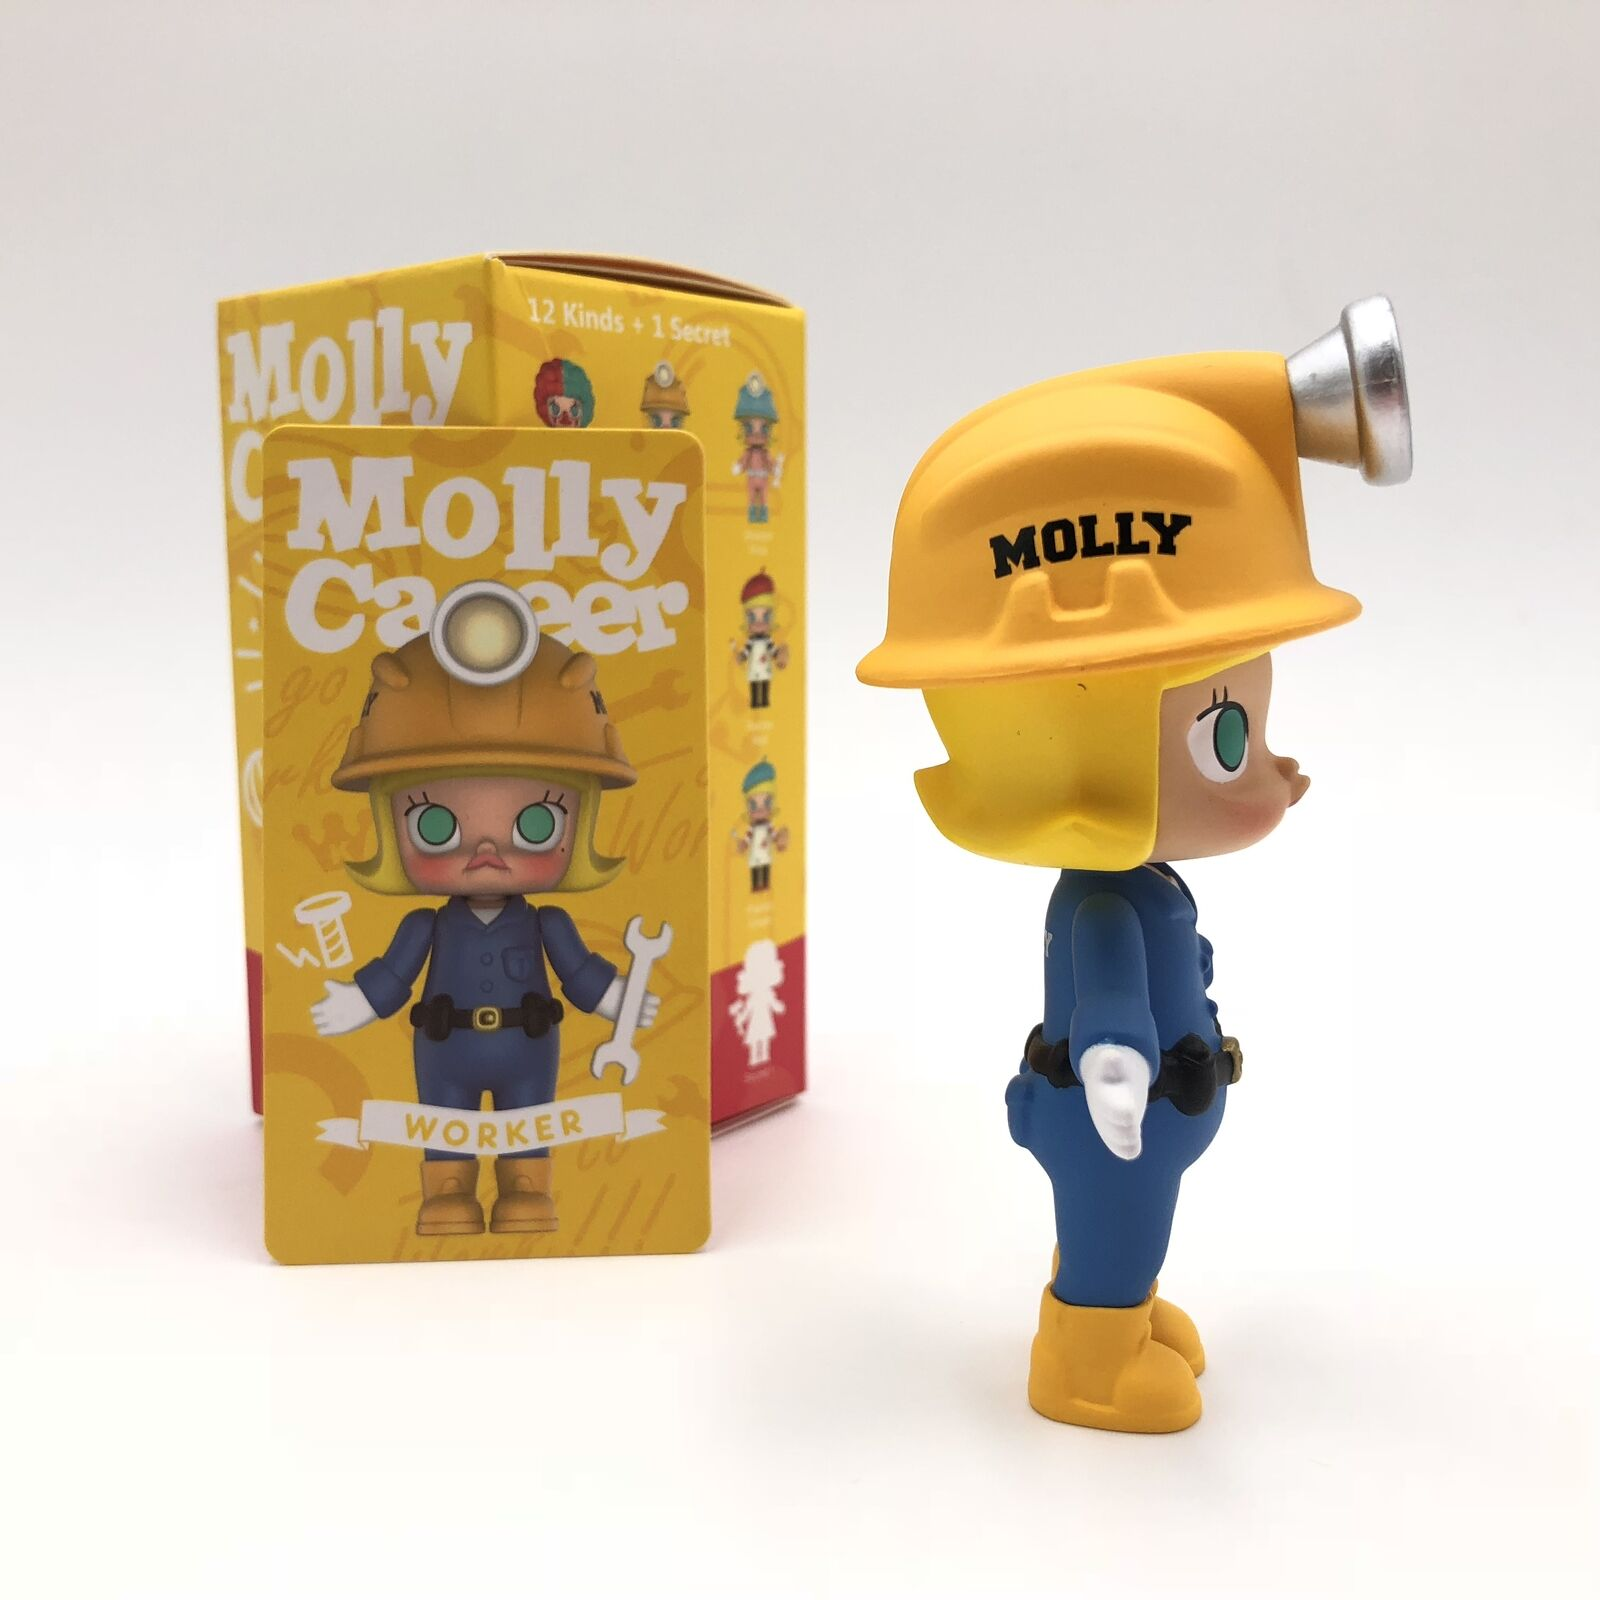 POP MART KENNYSWORK Molly Career Mini Figure Designer Toy Art Figurine Astronaut